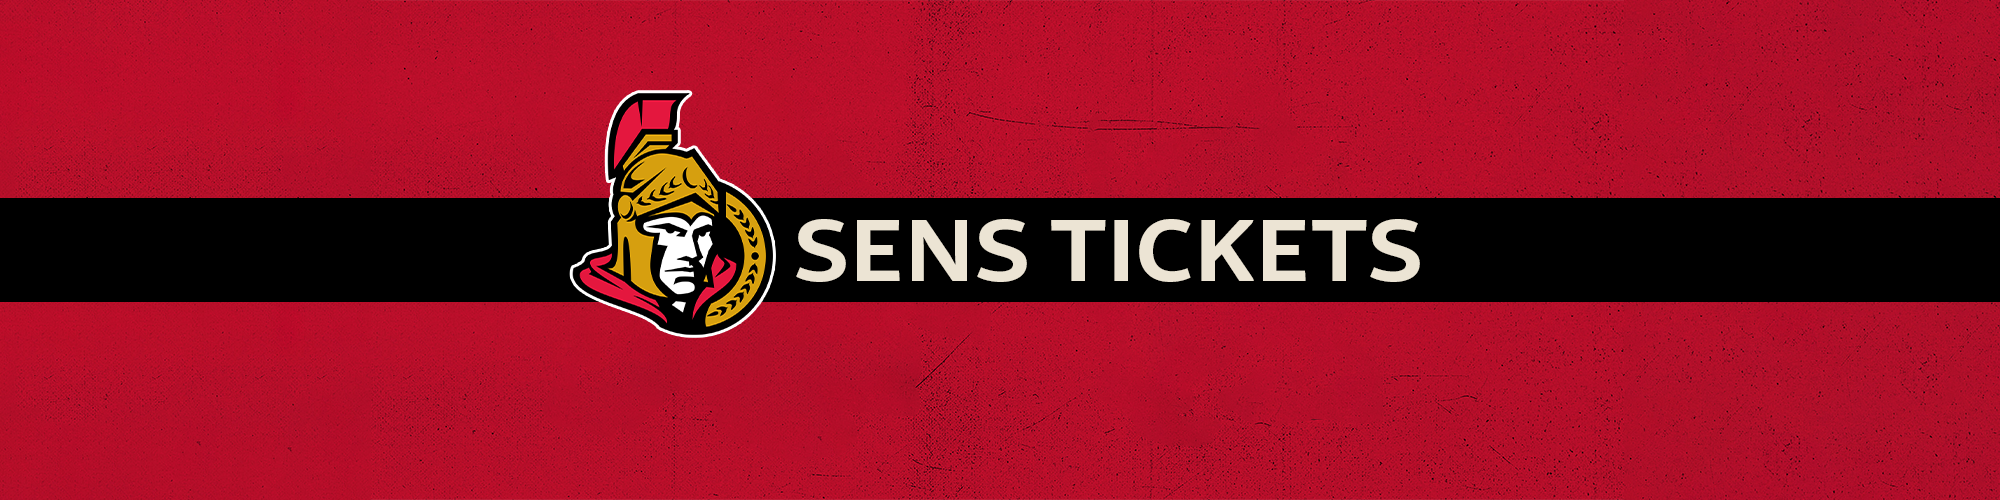 Ottawa Senators Tickets 2017-2018 pre-season contest banner